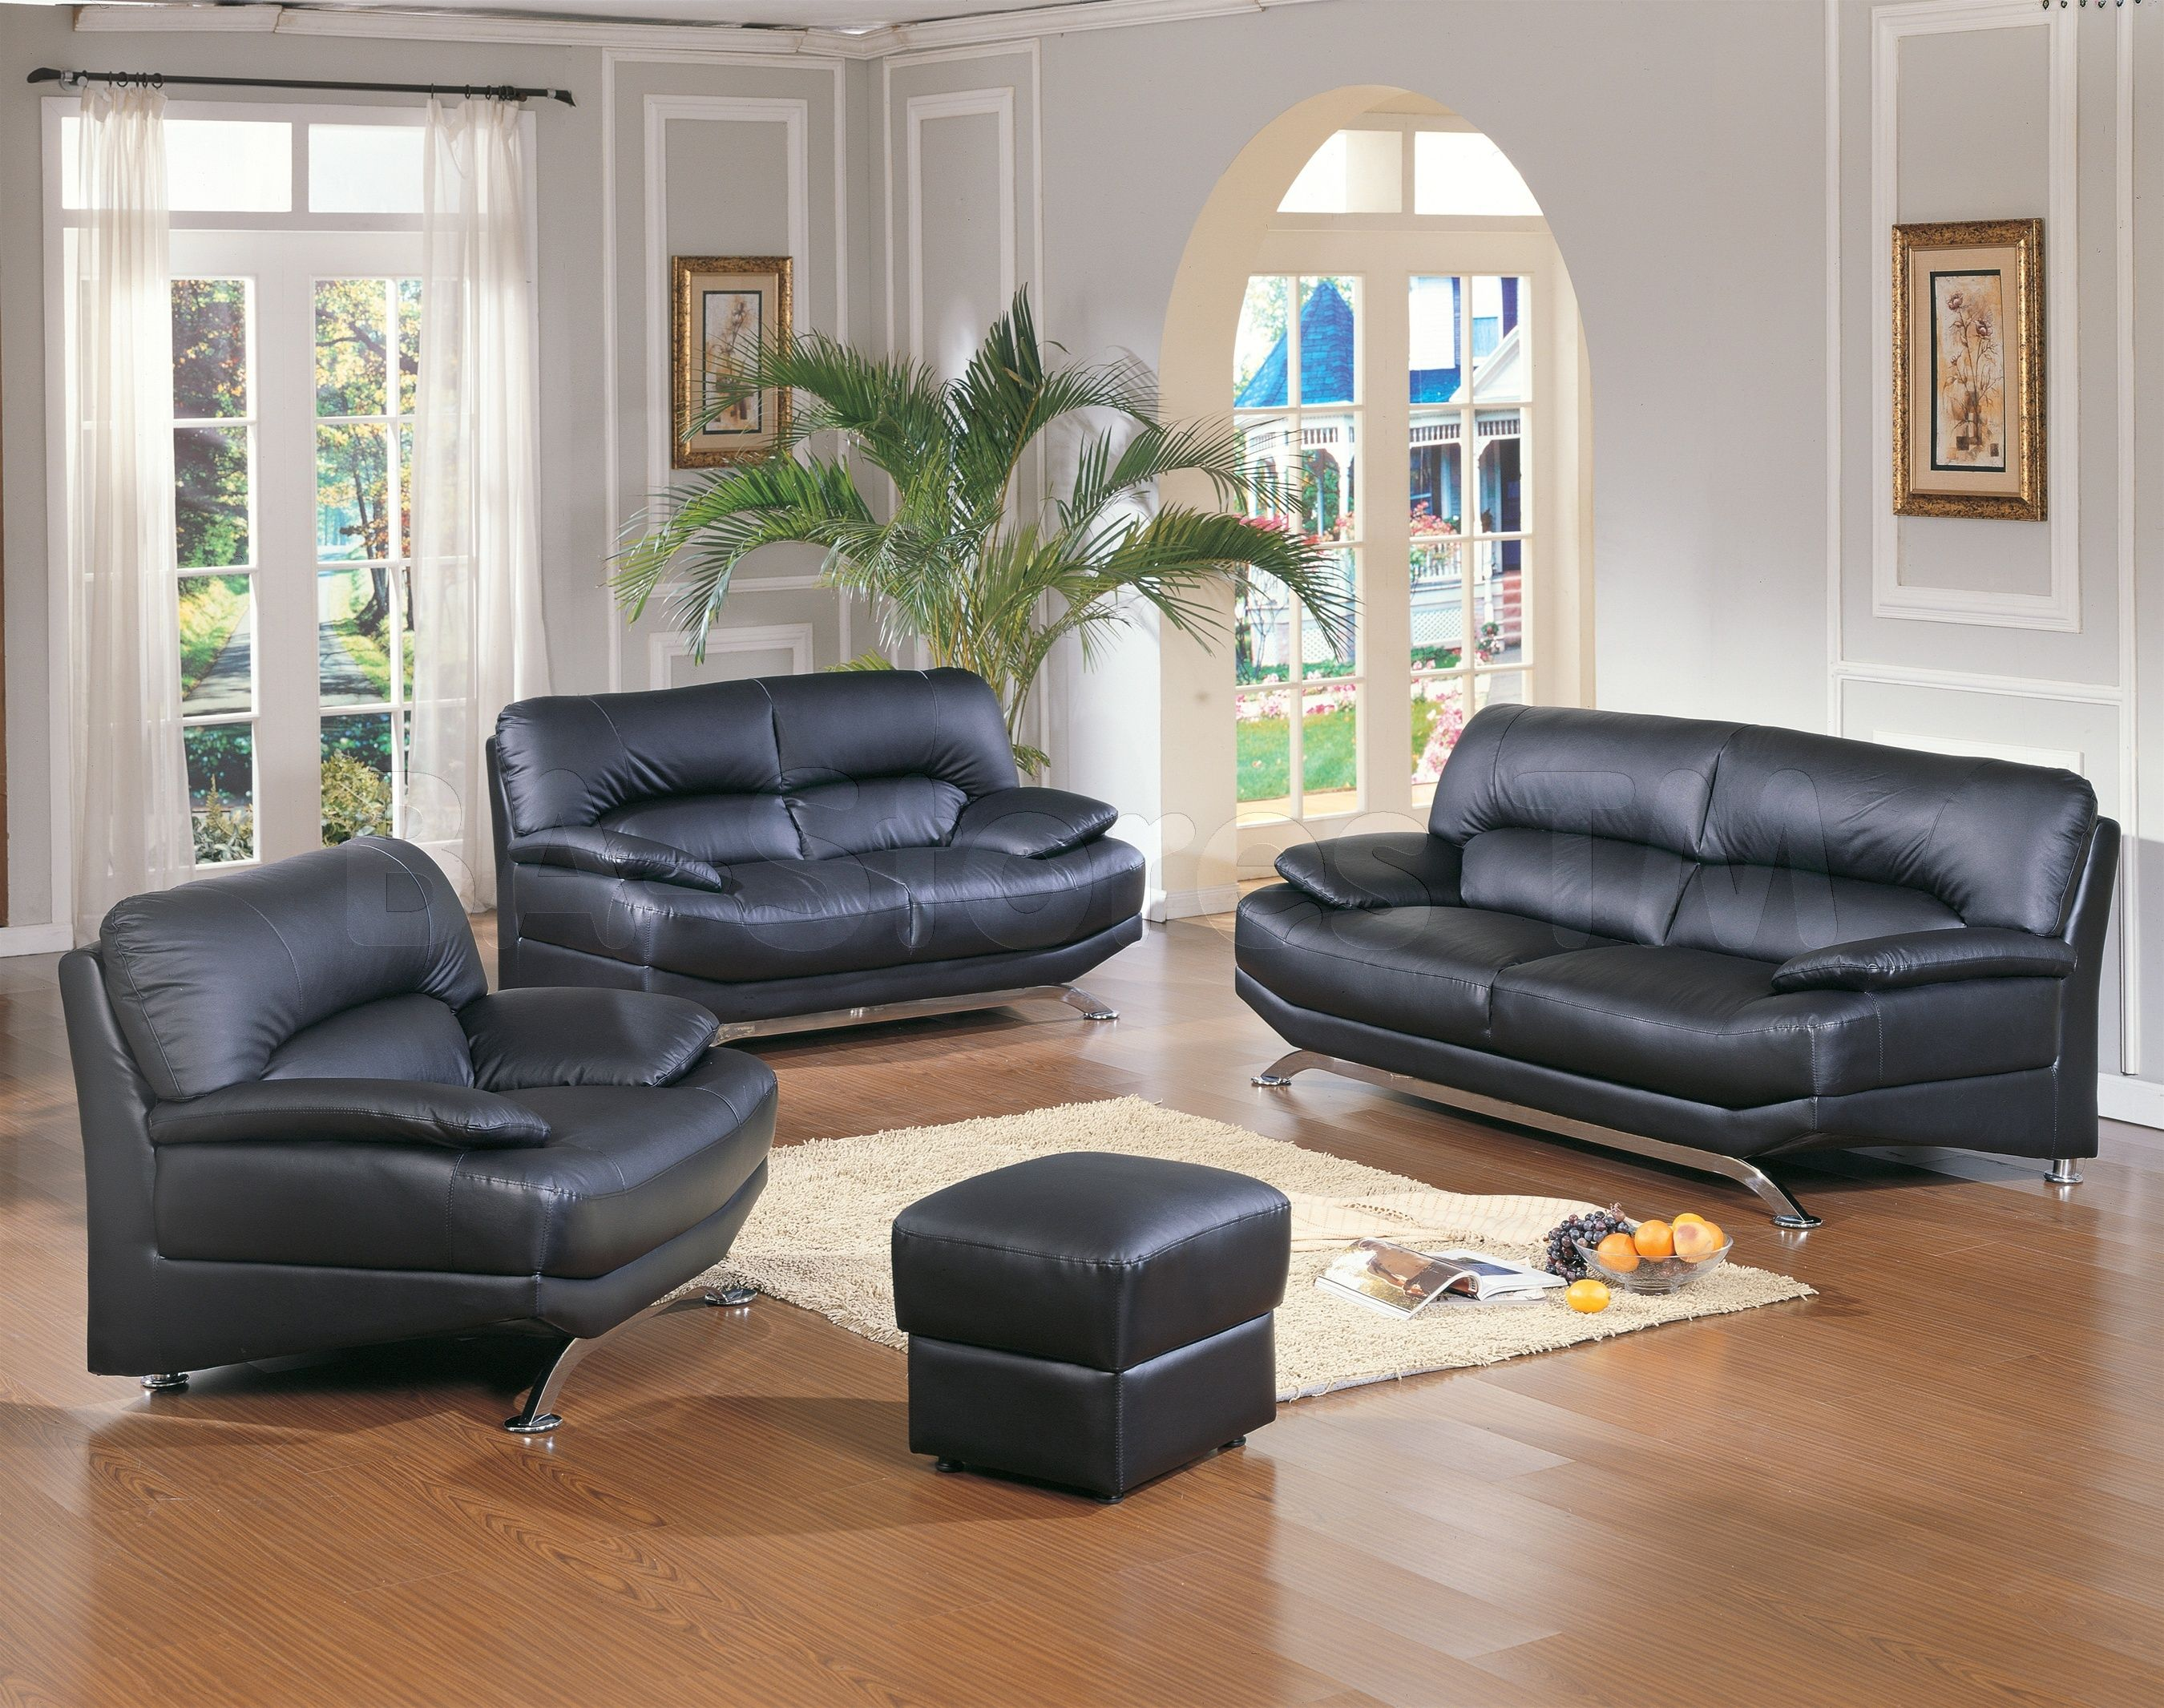 1000+ images about Living oom Leather Furniture on Pinterest - ^